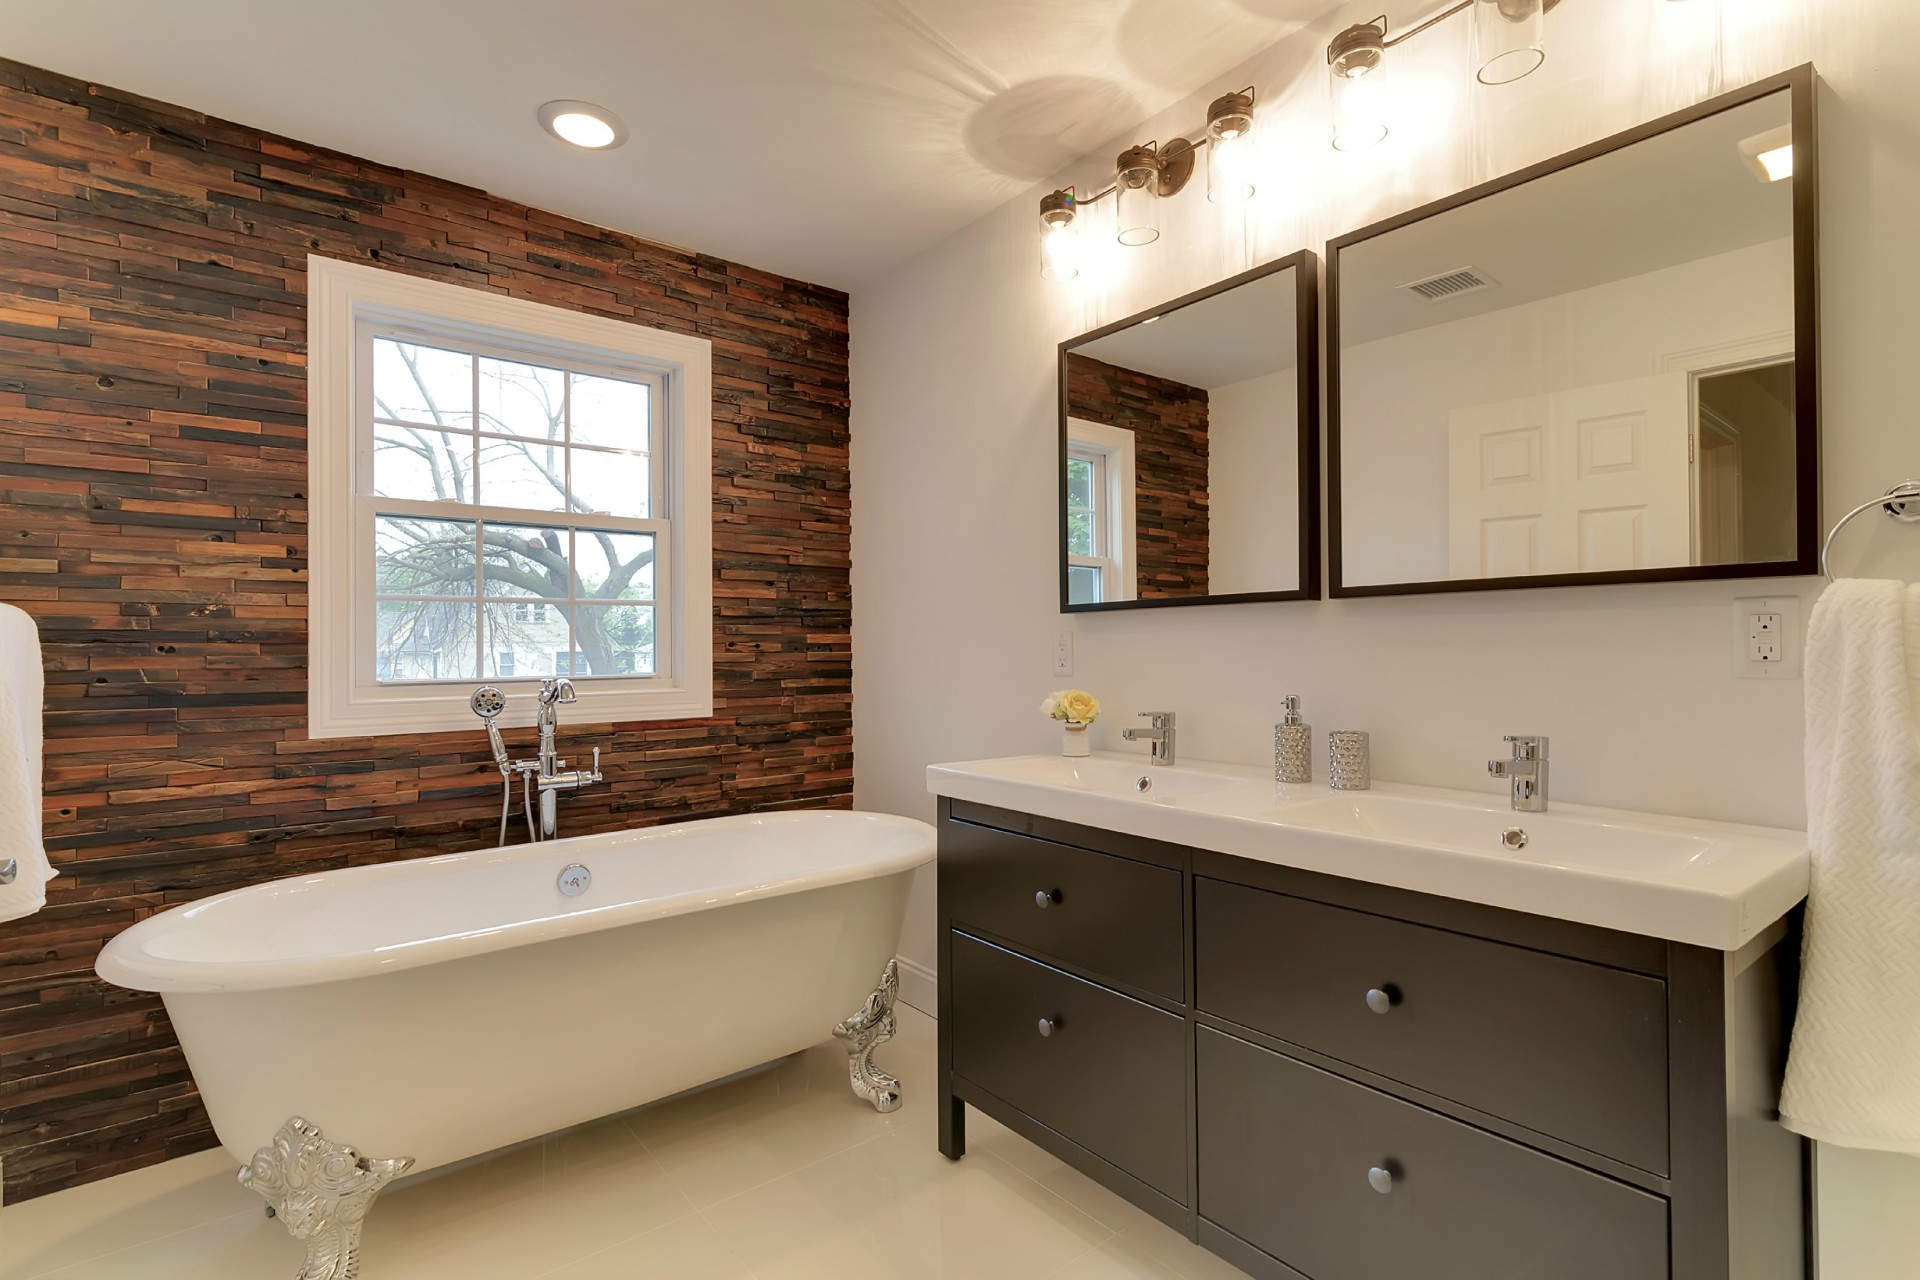 Master bathroom after private loan renovations